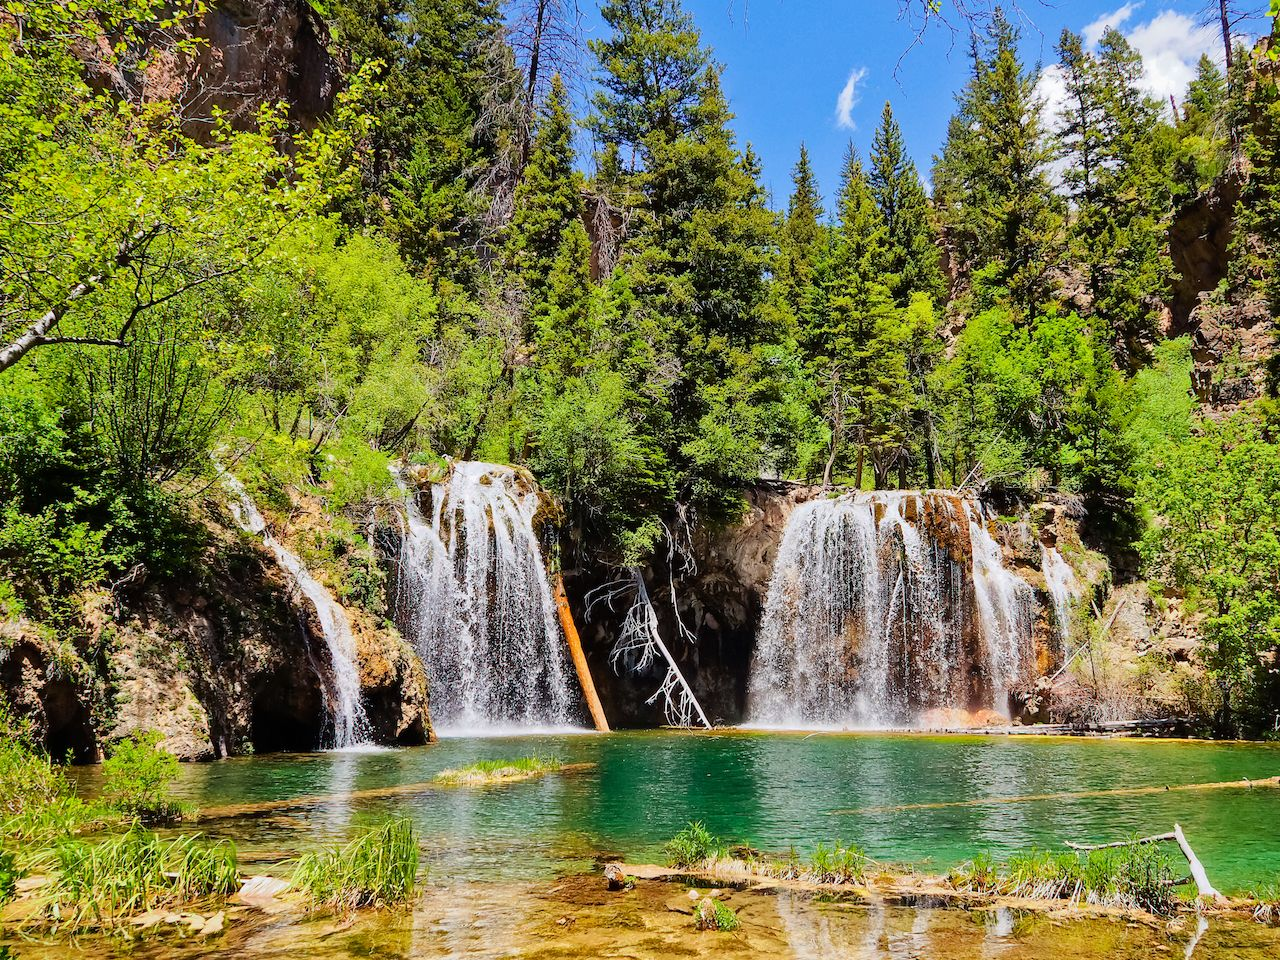 Hanging Lake permits are going fast